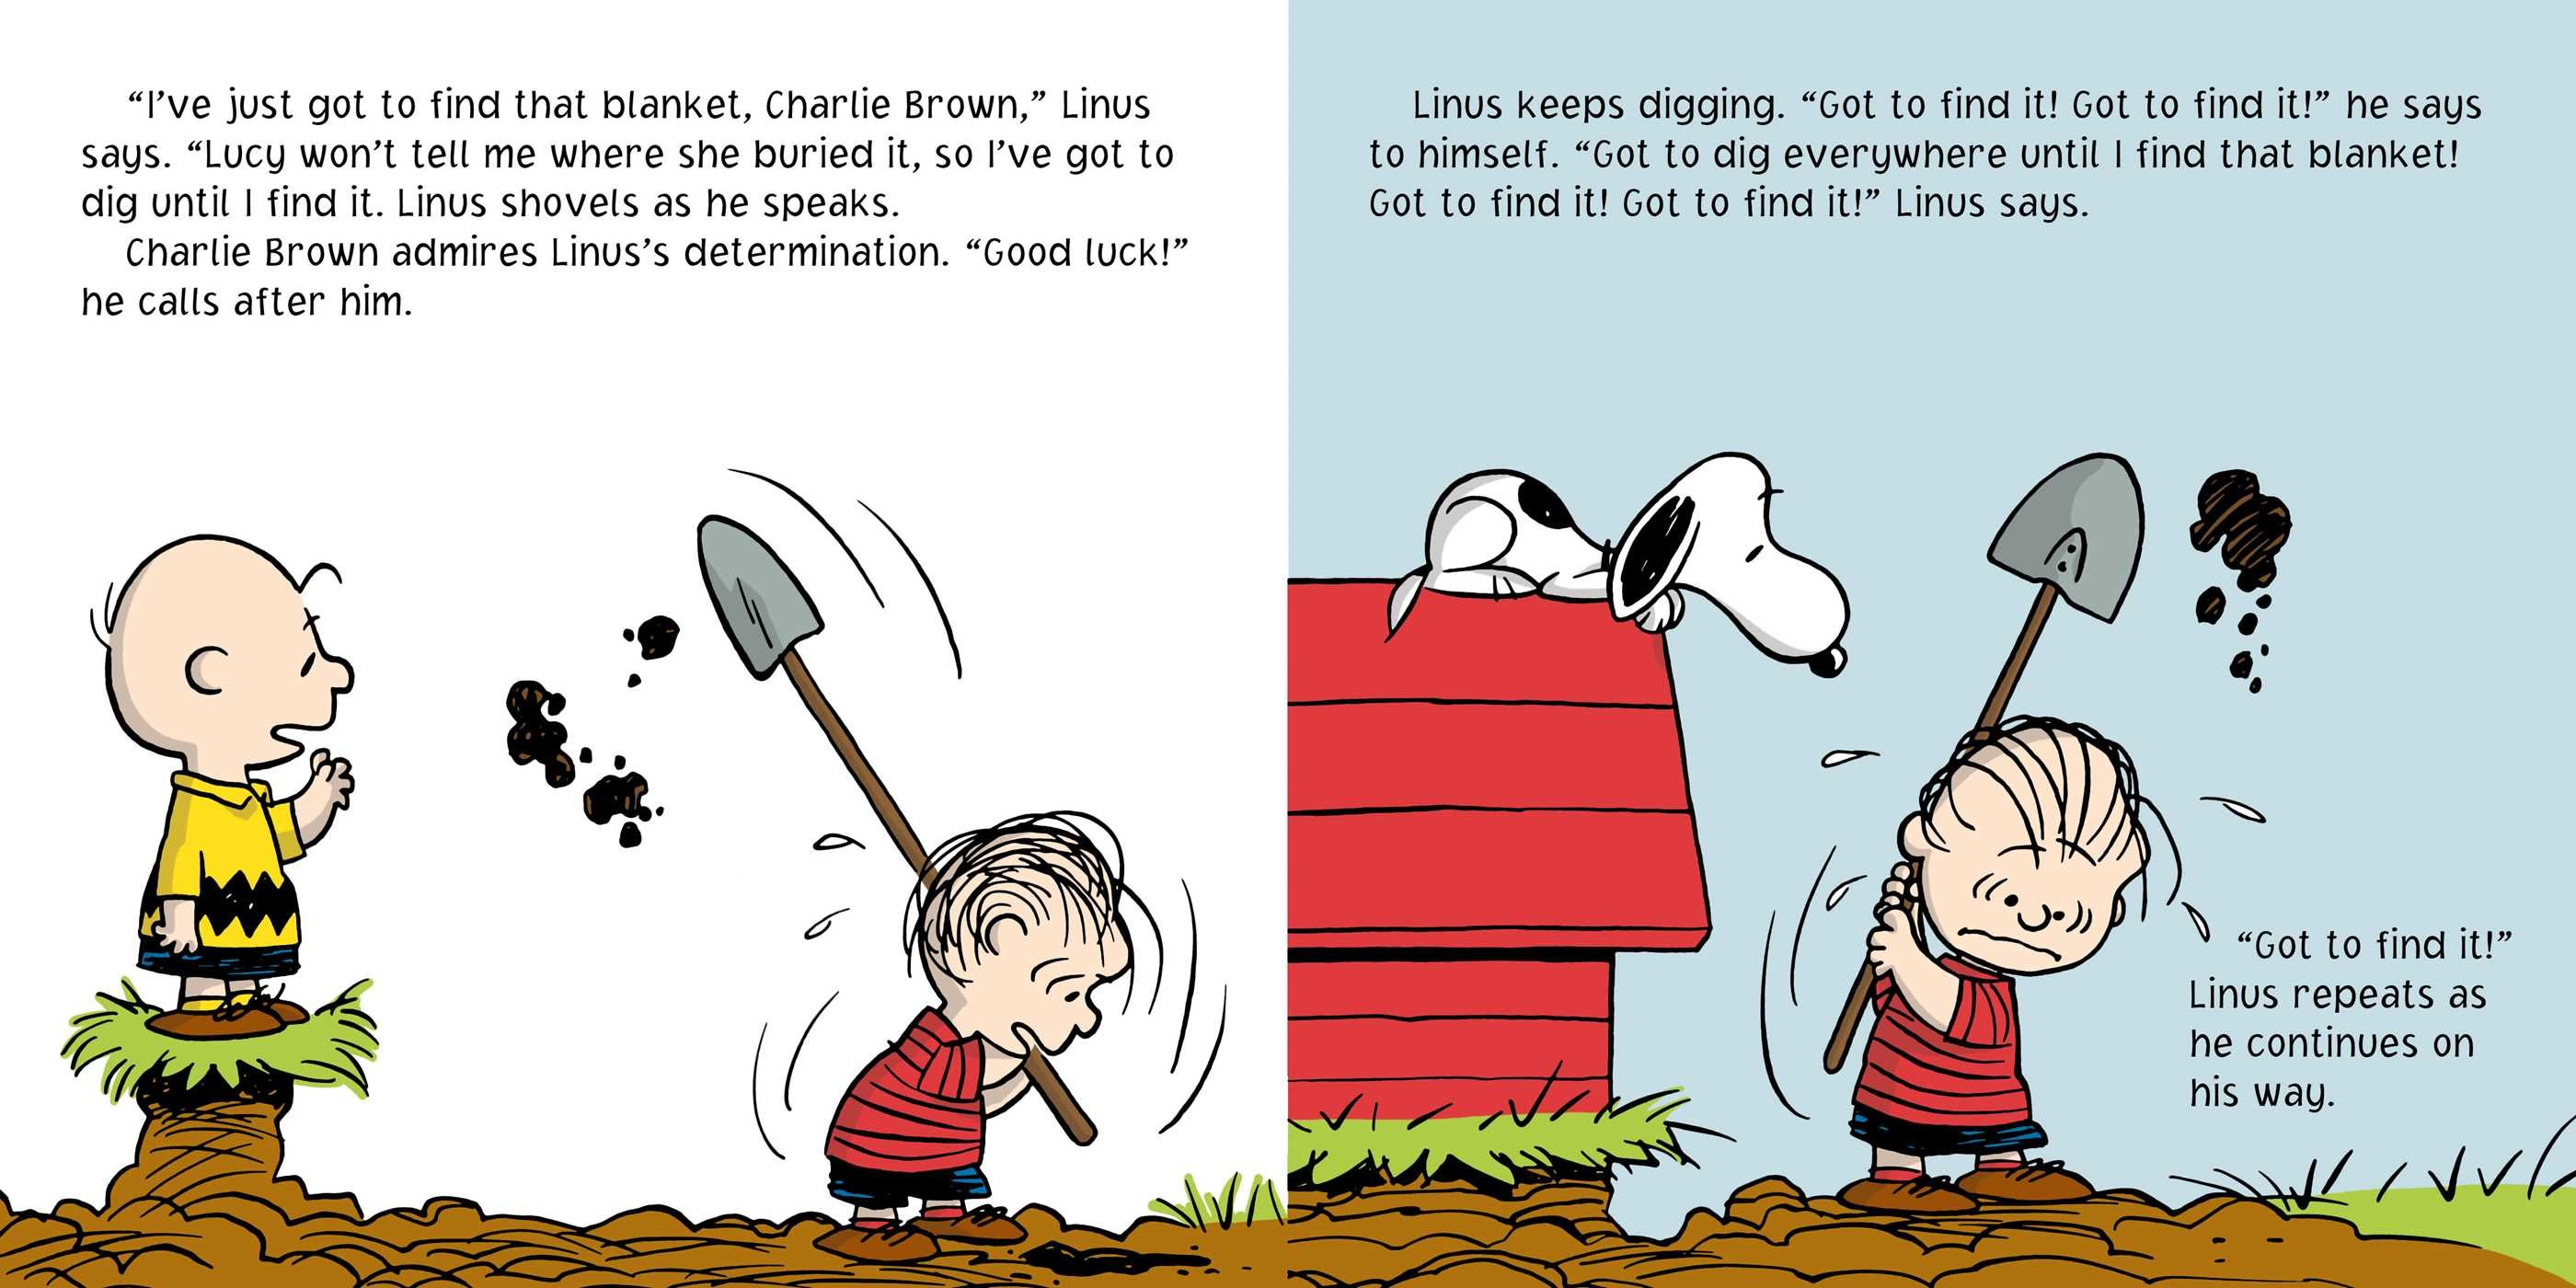 lose the blanket linus book by charles m schulz tina